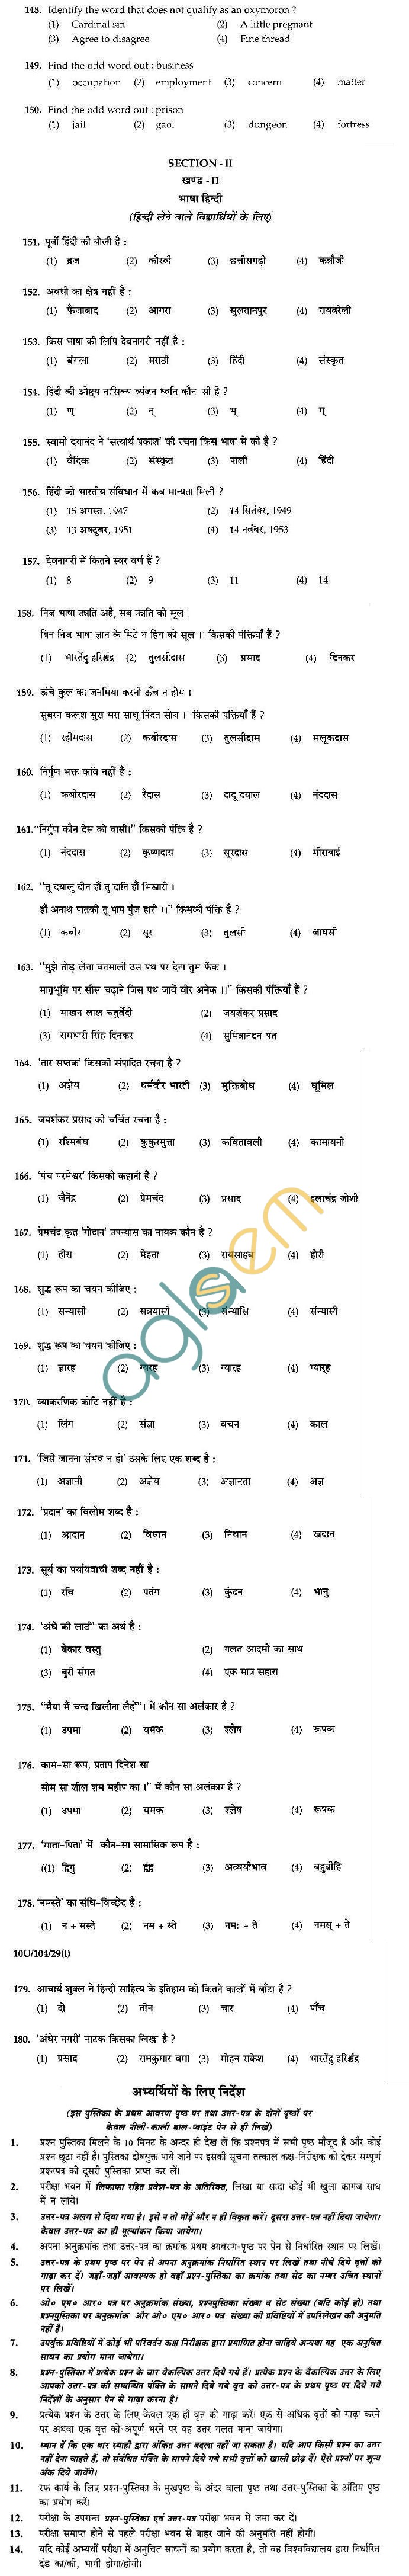 BHU UET 2010 B.A. Social Science Question Paper